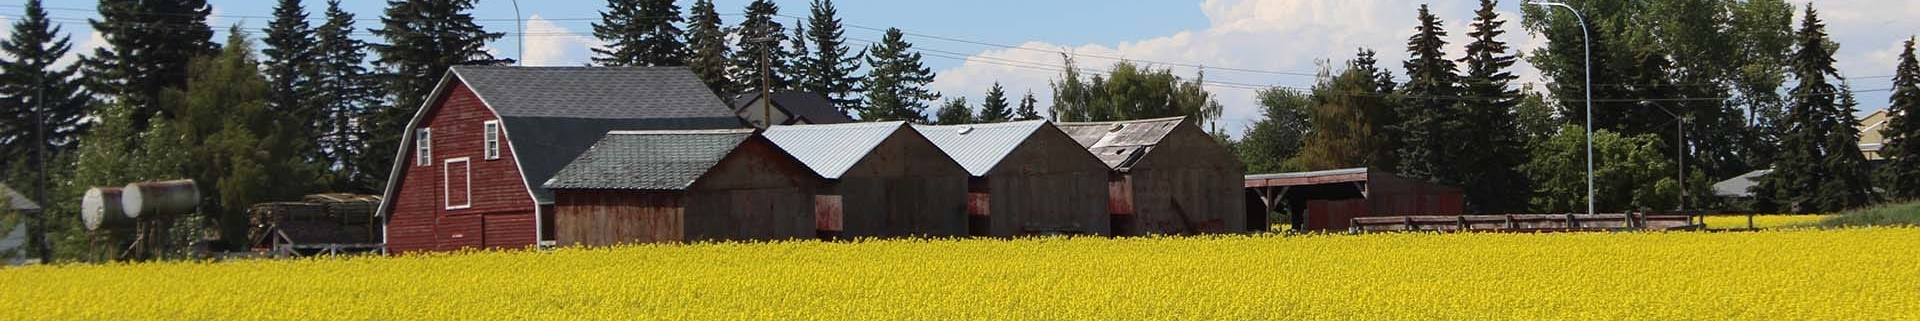 Bright yellow canola field with a red barn in the background